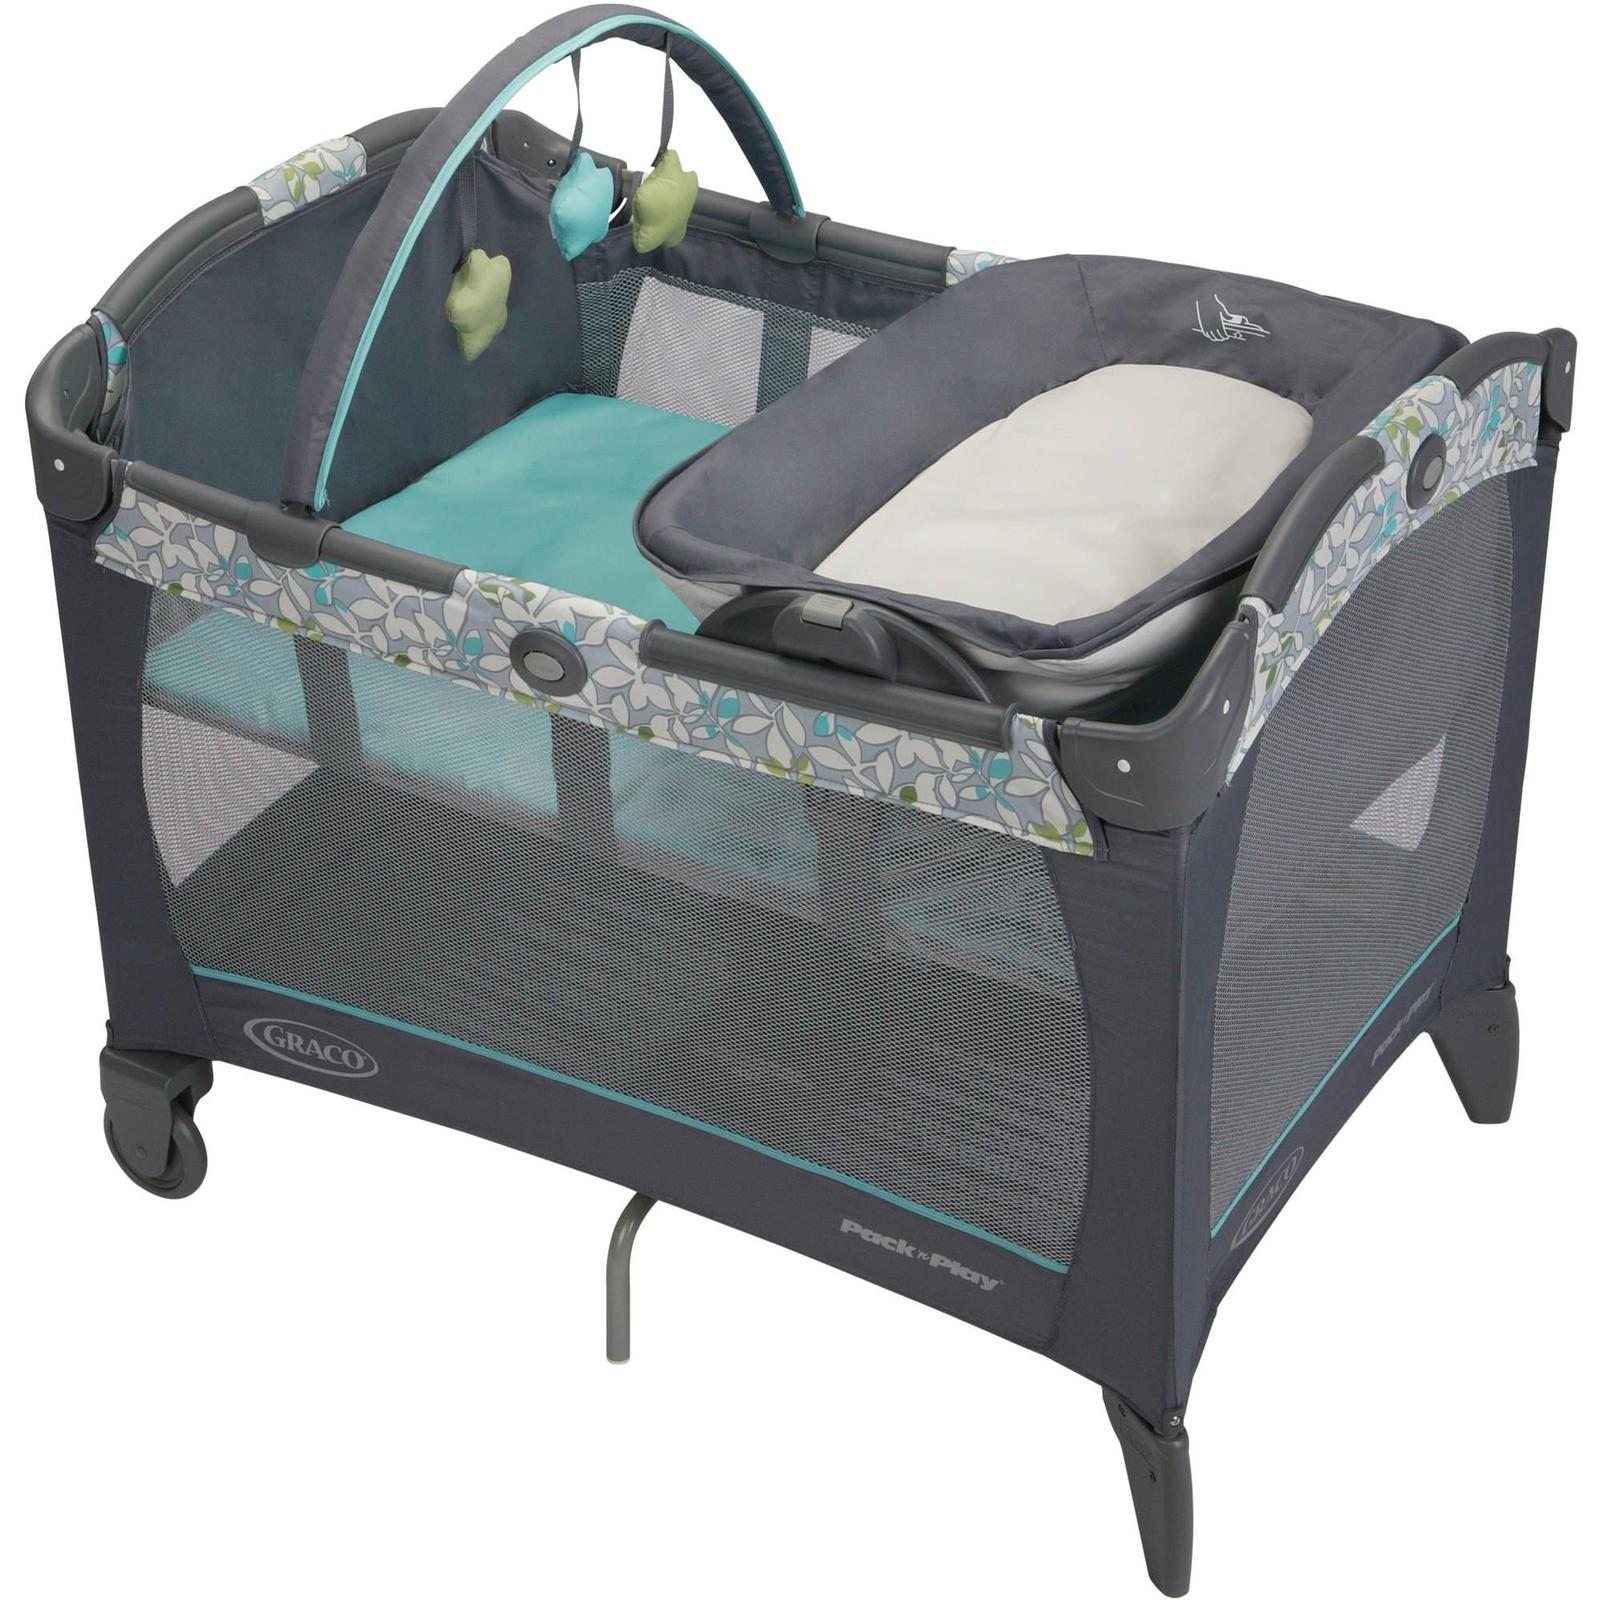 Graco Pack N Play Portable Reversible Napper Changer Playard Asteroid Portable Vacuum Danby Portable Air Conditioner 6000 Btu Review Portable Projector Price In Dubai: Pack N Play Baby Playard, Baby Play Yard With Reversible